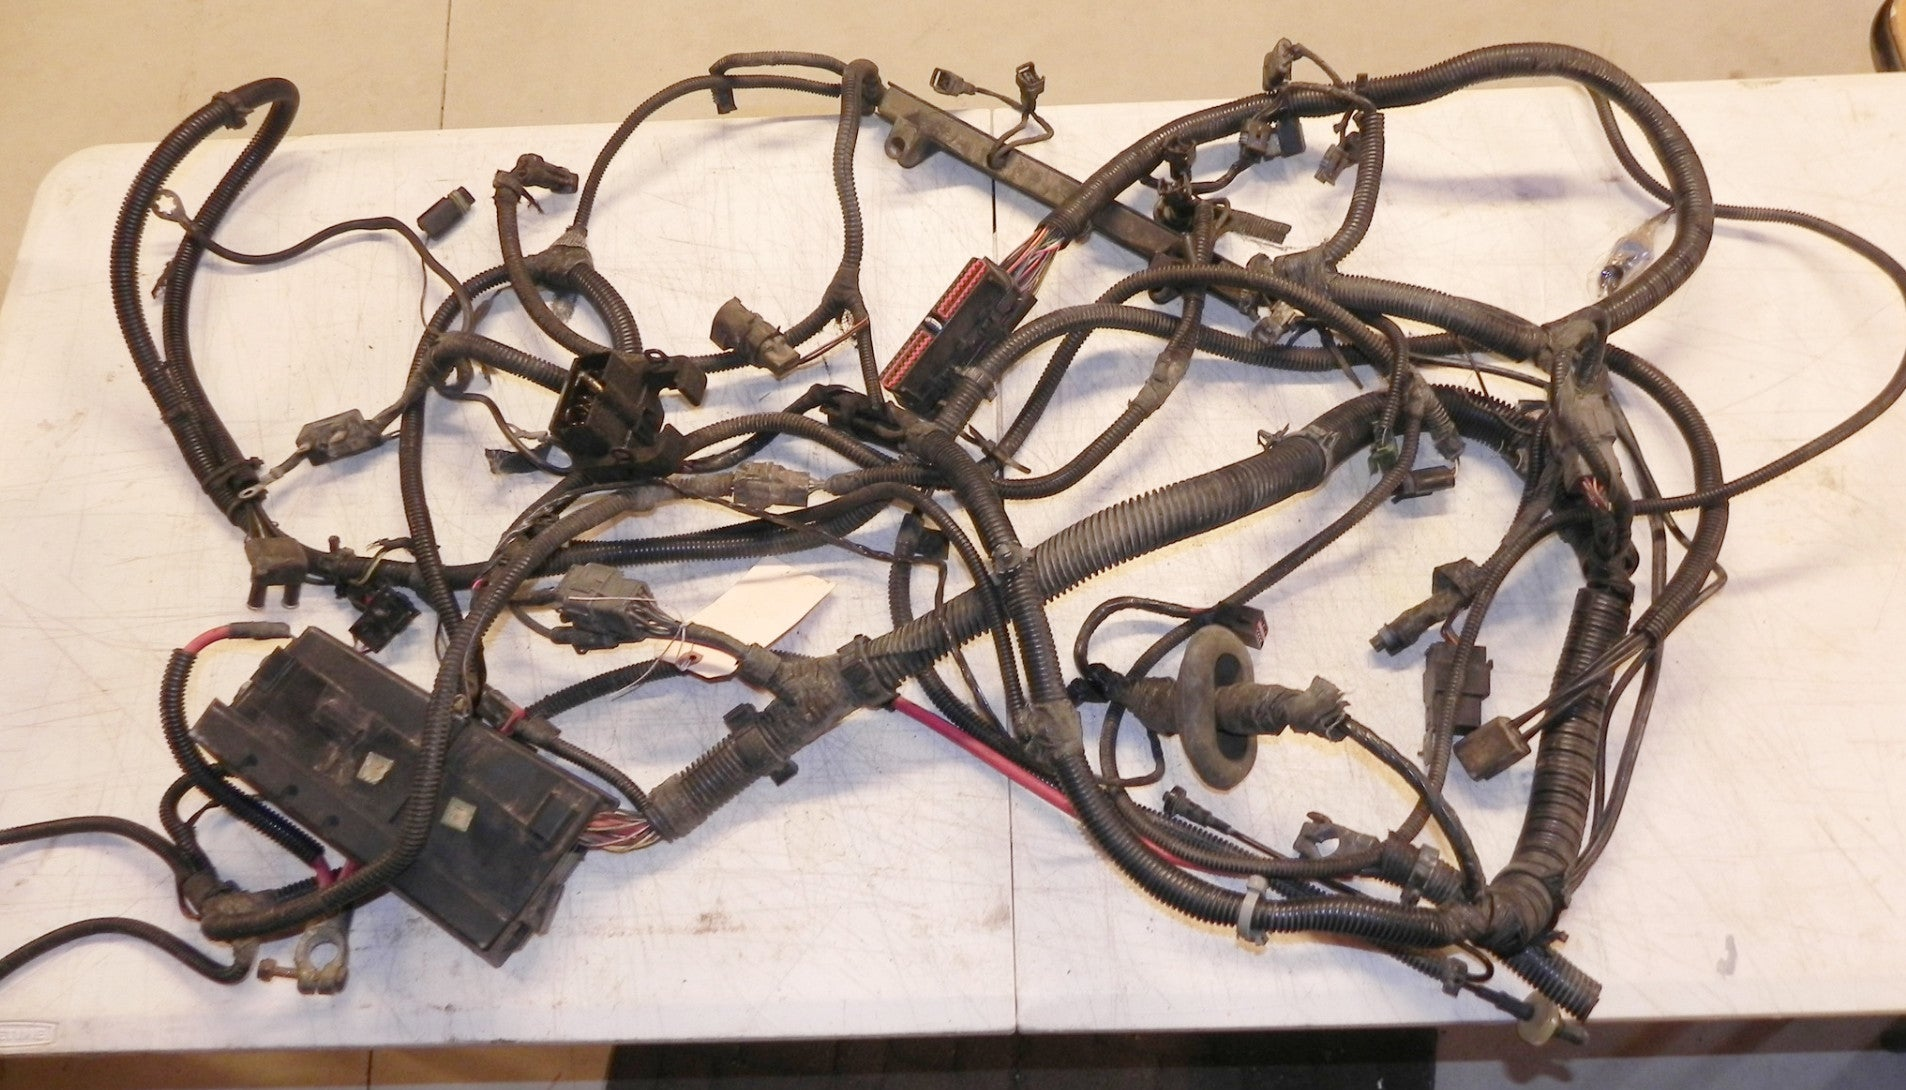 jeep wrangler engine wiring harness  jeep wrangler yj engine wiring harness 2 5 4 cyl automatic 94 95 on 1990 jeep